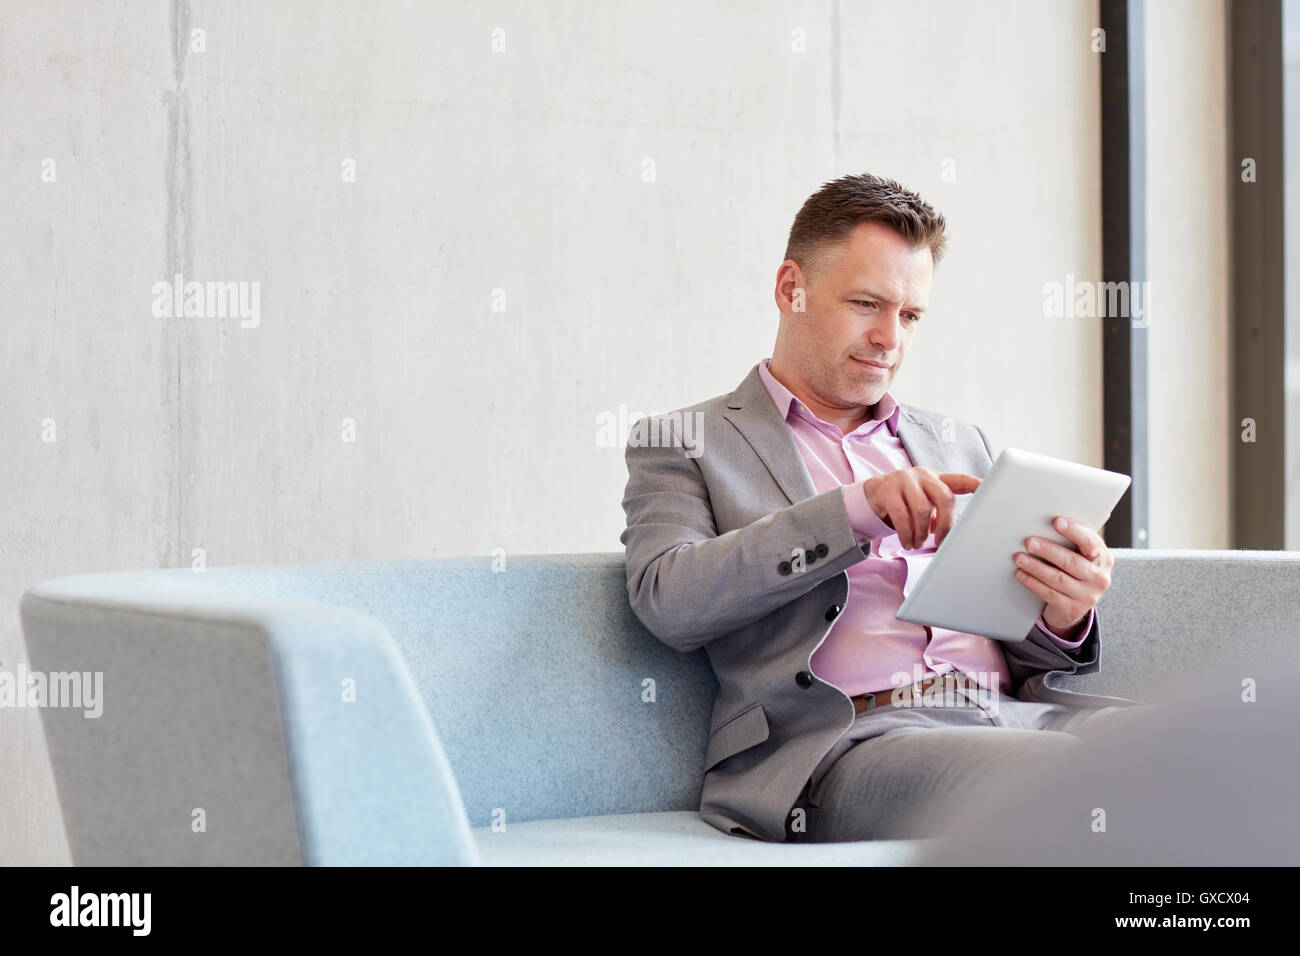 Businessman using digital tablet touchscreen in office - Stock Image